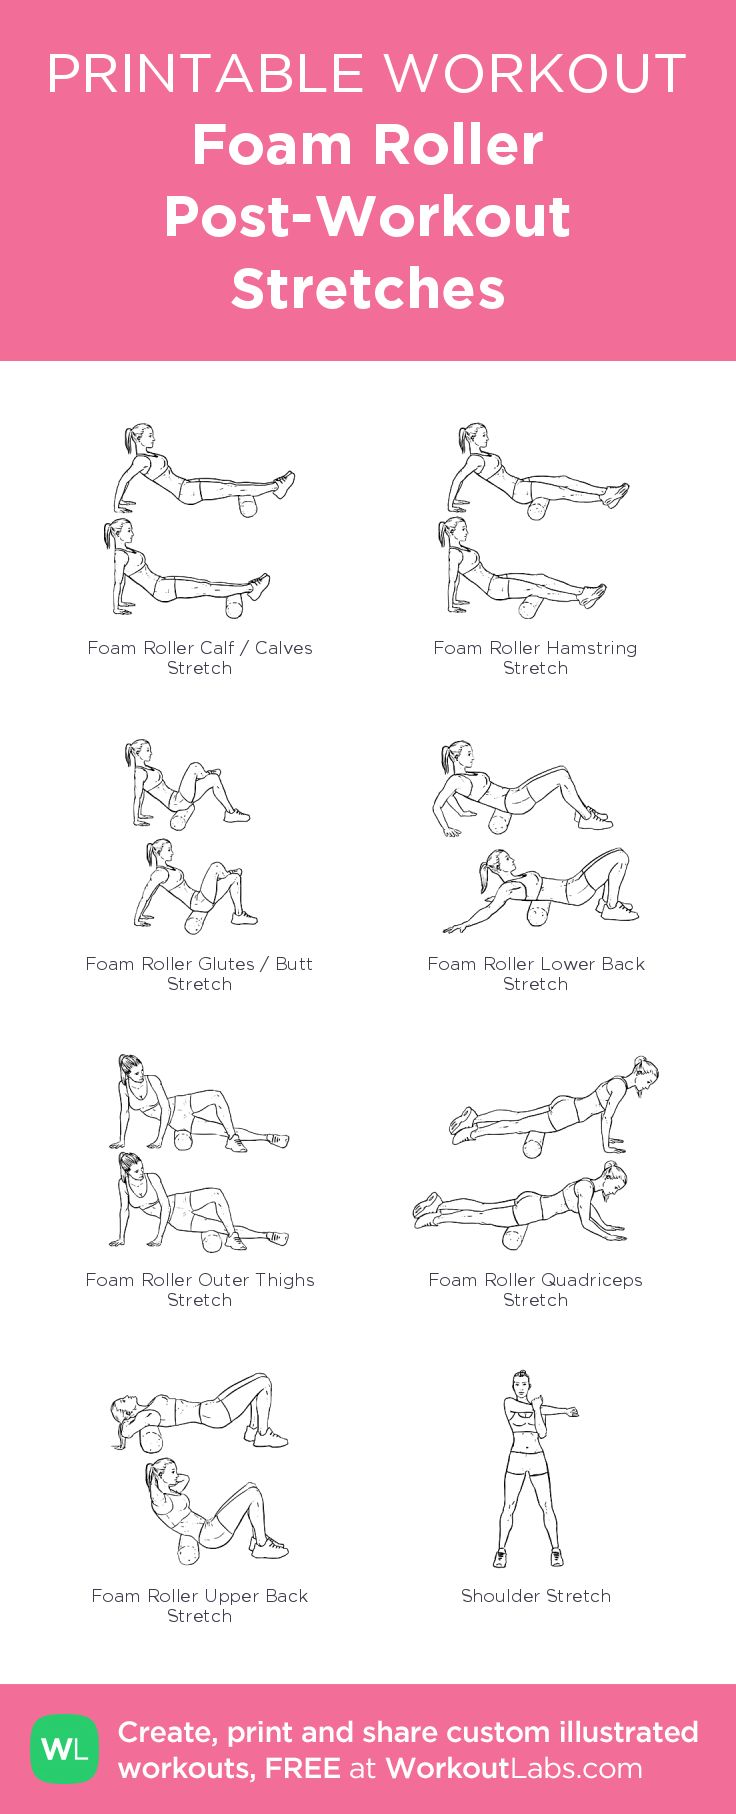 Foam Roller Post-Workout Stretches – my exercise plan created at WorkoutLabs.com • Click to download a printable PDF and build your own #customworkout